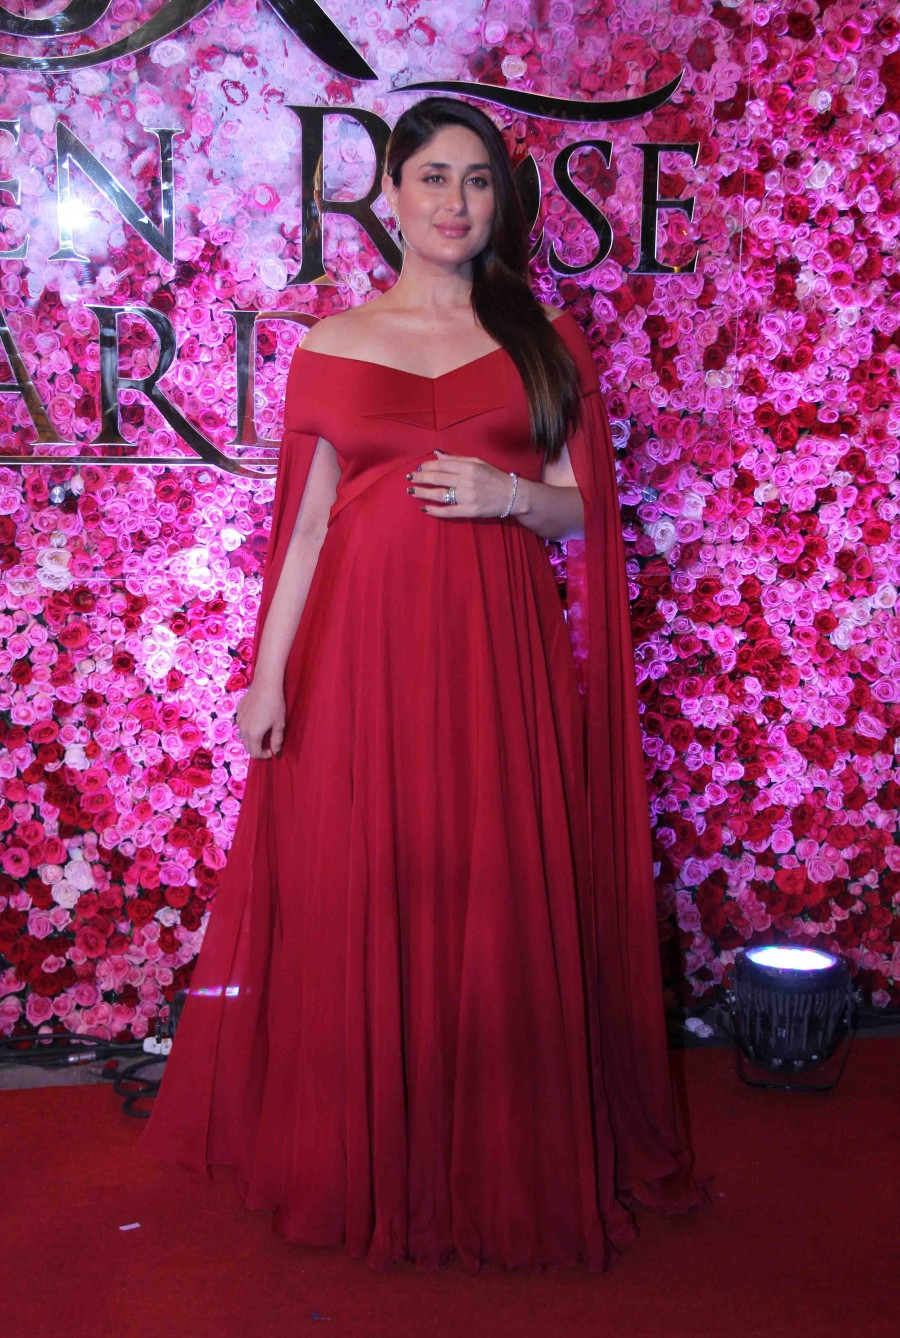 Kareena Kapoor Khan,Kareena Kapoor,Kareena Kapoor Khan at Lux Golden Rose Awards 2016,Kareena Kapoor Khan at Lux Golden Rose Awards,Kareena Kapoor at Lux Golden Rose Awards,kareena kapoor khan baby,Kareena Kapoor Khan baby bump,Kareena Kapoor baby bump